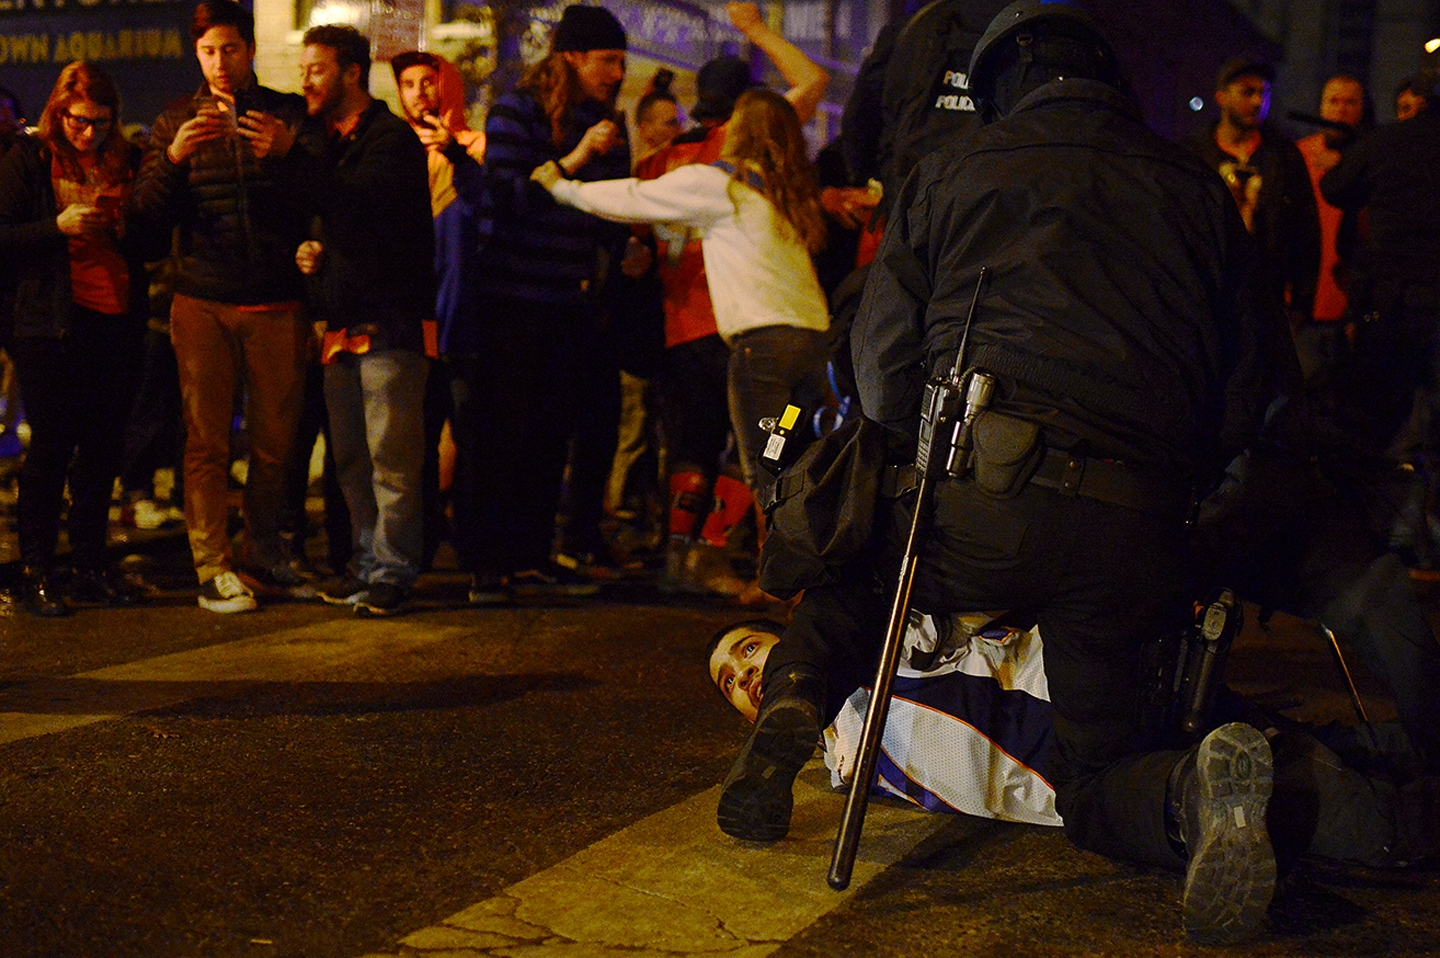 Denver Celebrates Broncos' Super Bowl Win A man is held down by police after being dragged out of his car and restrained at the intersection of 21th St. and Larmier St. on February 7, 2016 in Denver, Colorado. Fans celebrated in the street of Denver after the Denver Broncos defeated the Carolina Panthers 24-10 to win Super Bowl 50. (Photo by Brent Lewis/The Denver Post )